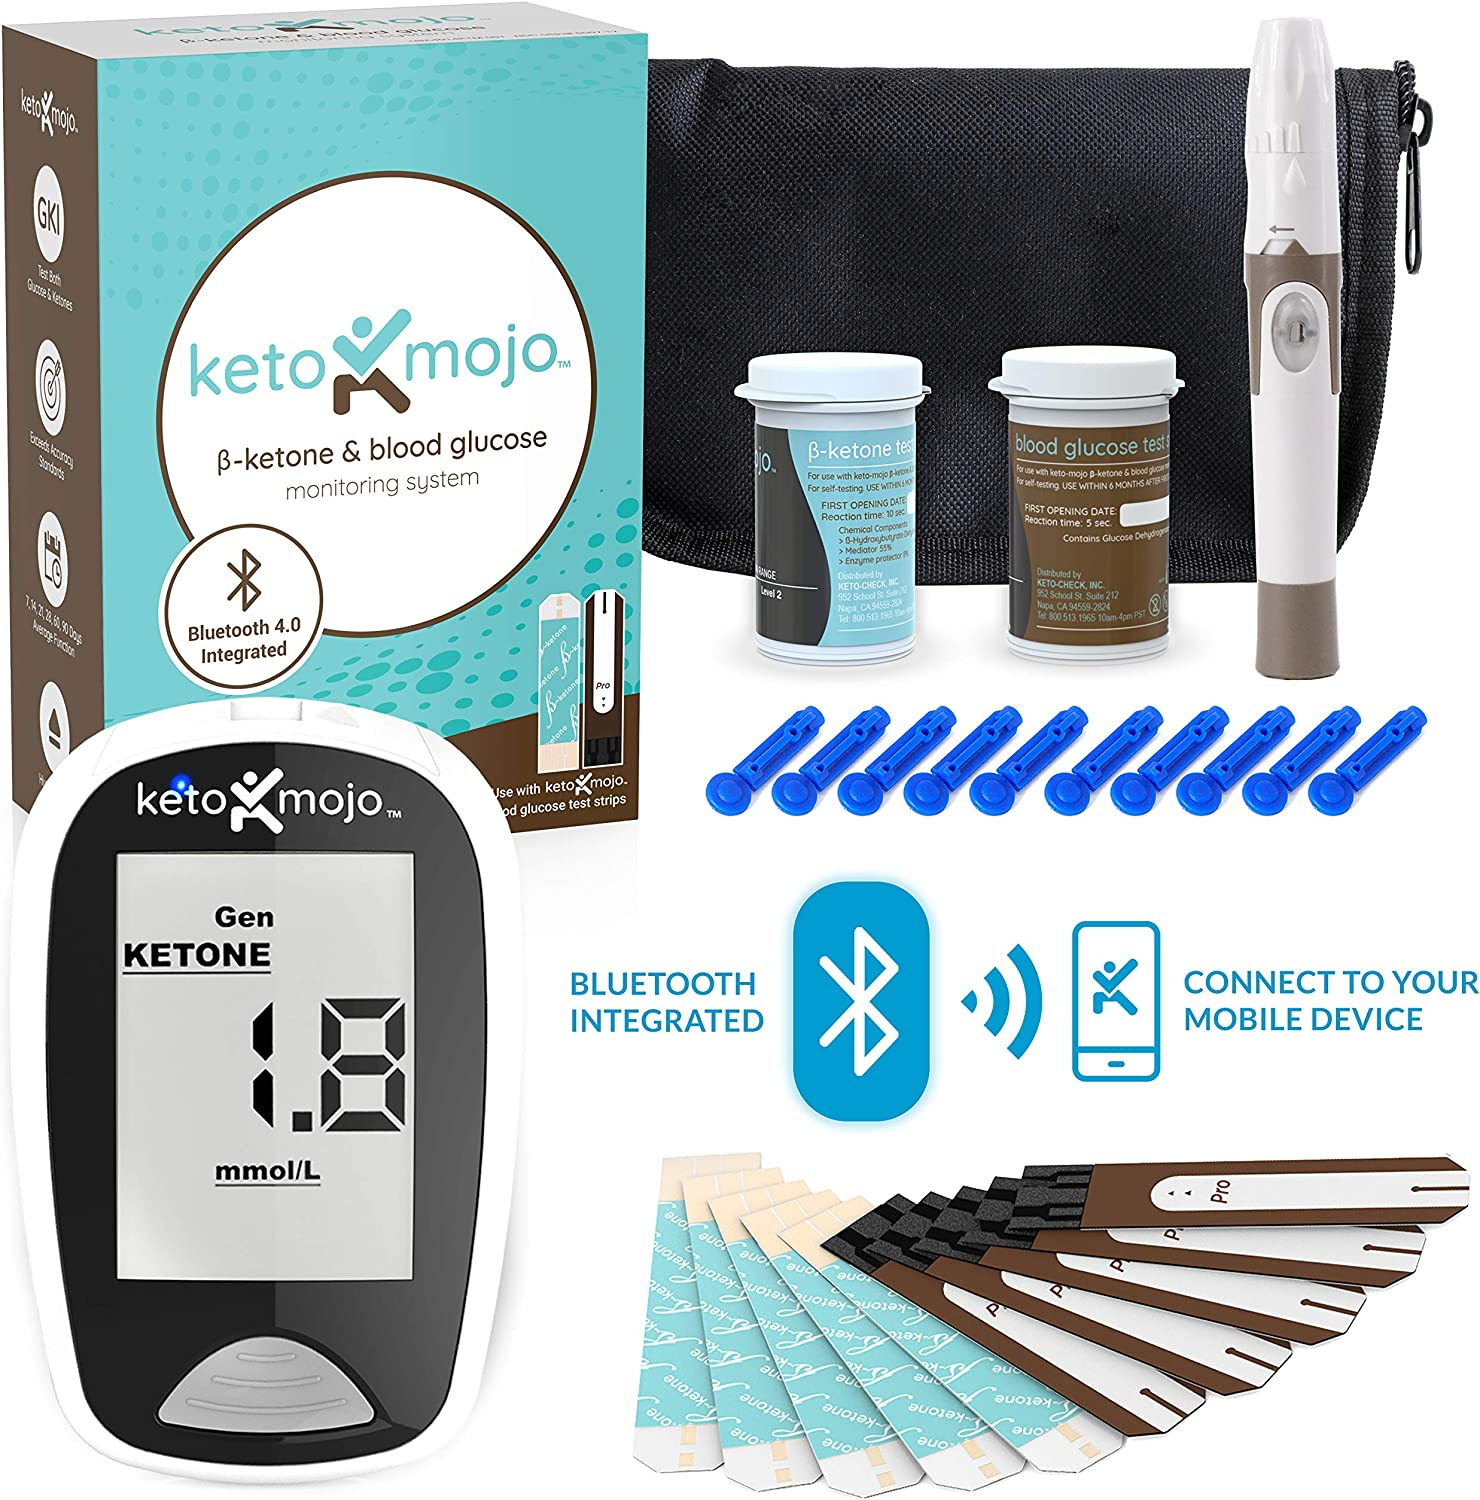 KETO-MOJO Blood Ketone and Glucose Testing Kit, 1 Meter, 10 Ketone & 10 Glucose Test Strips,1 Lancing Device, 10 Lancets, Monitor Your Ketogenic Diet